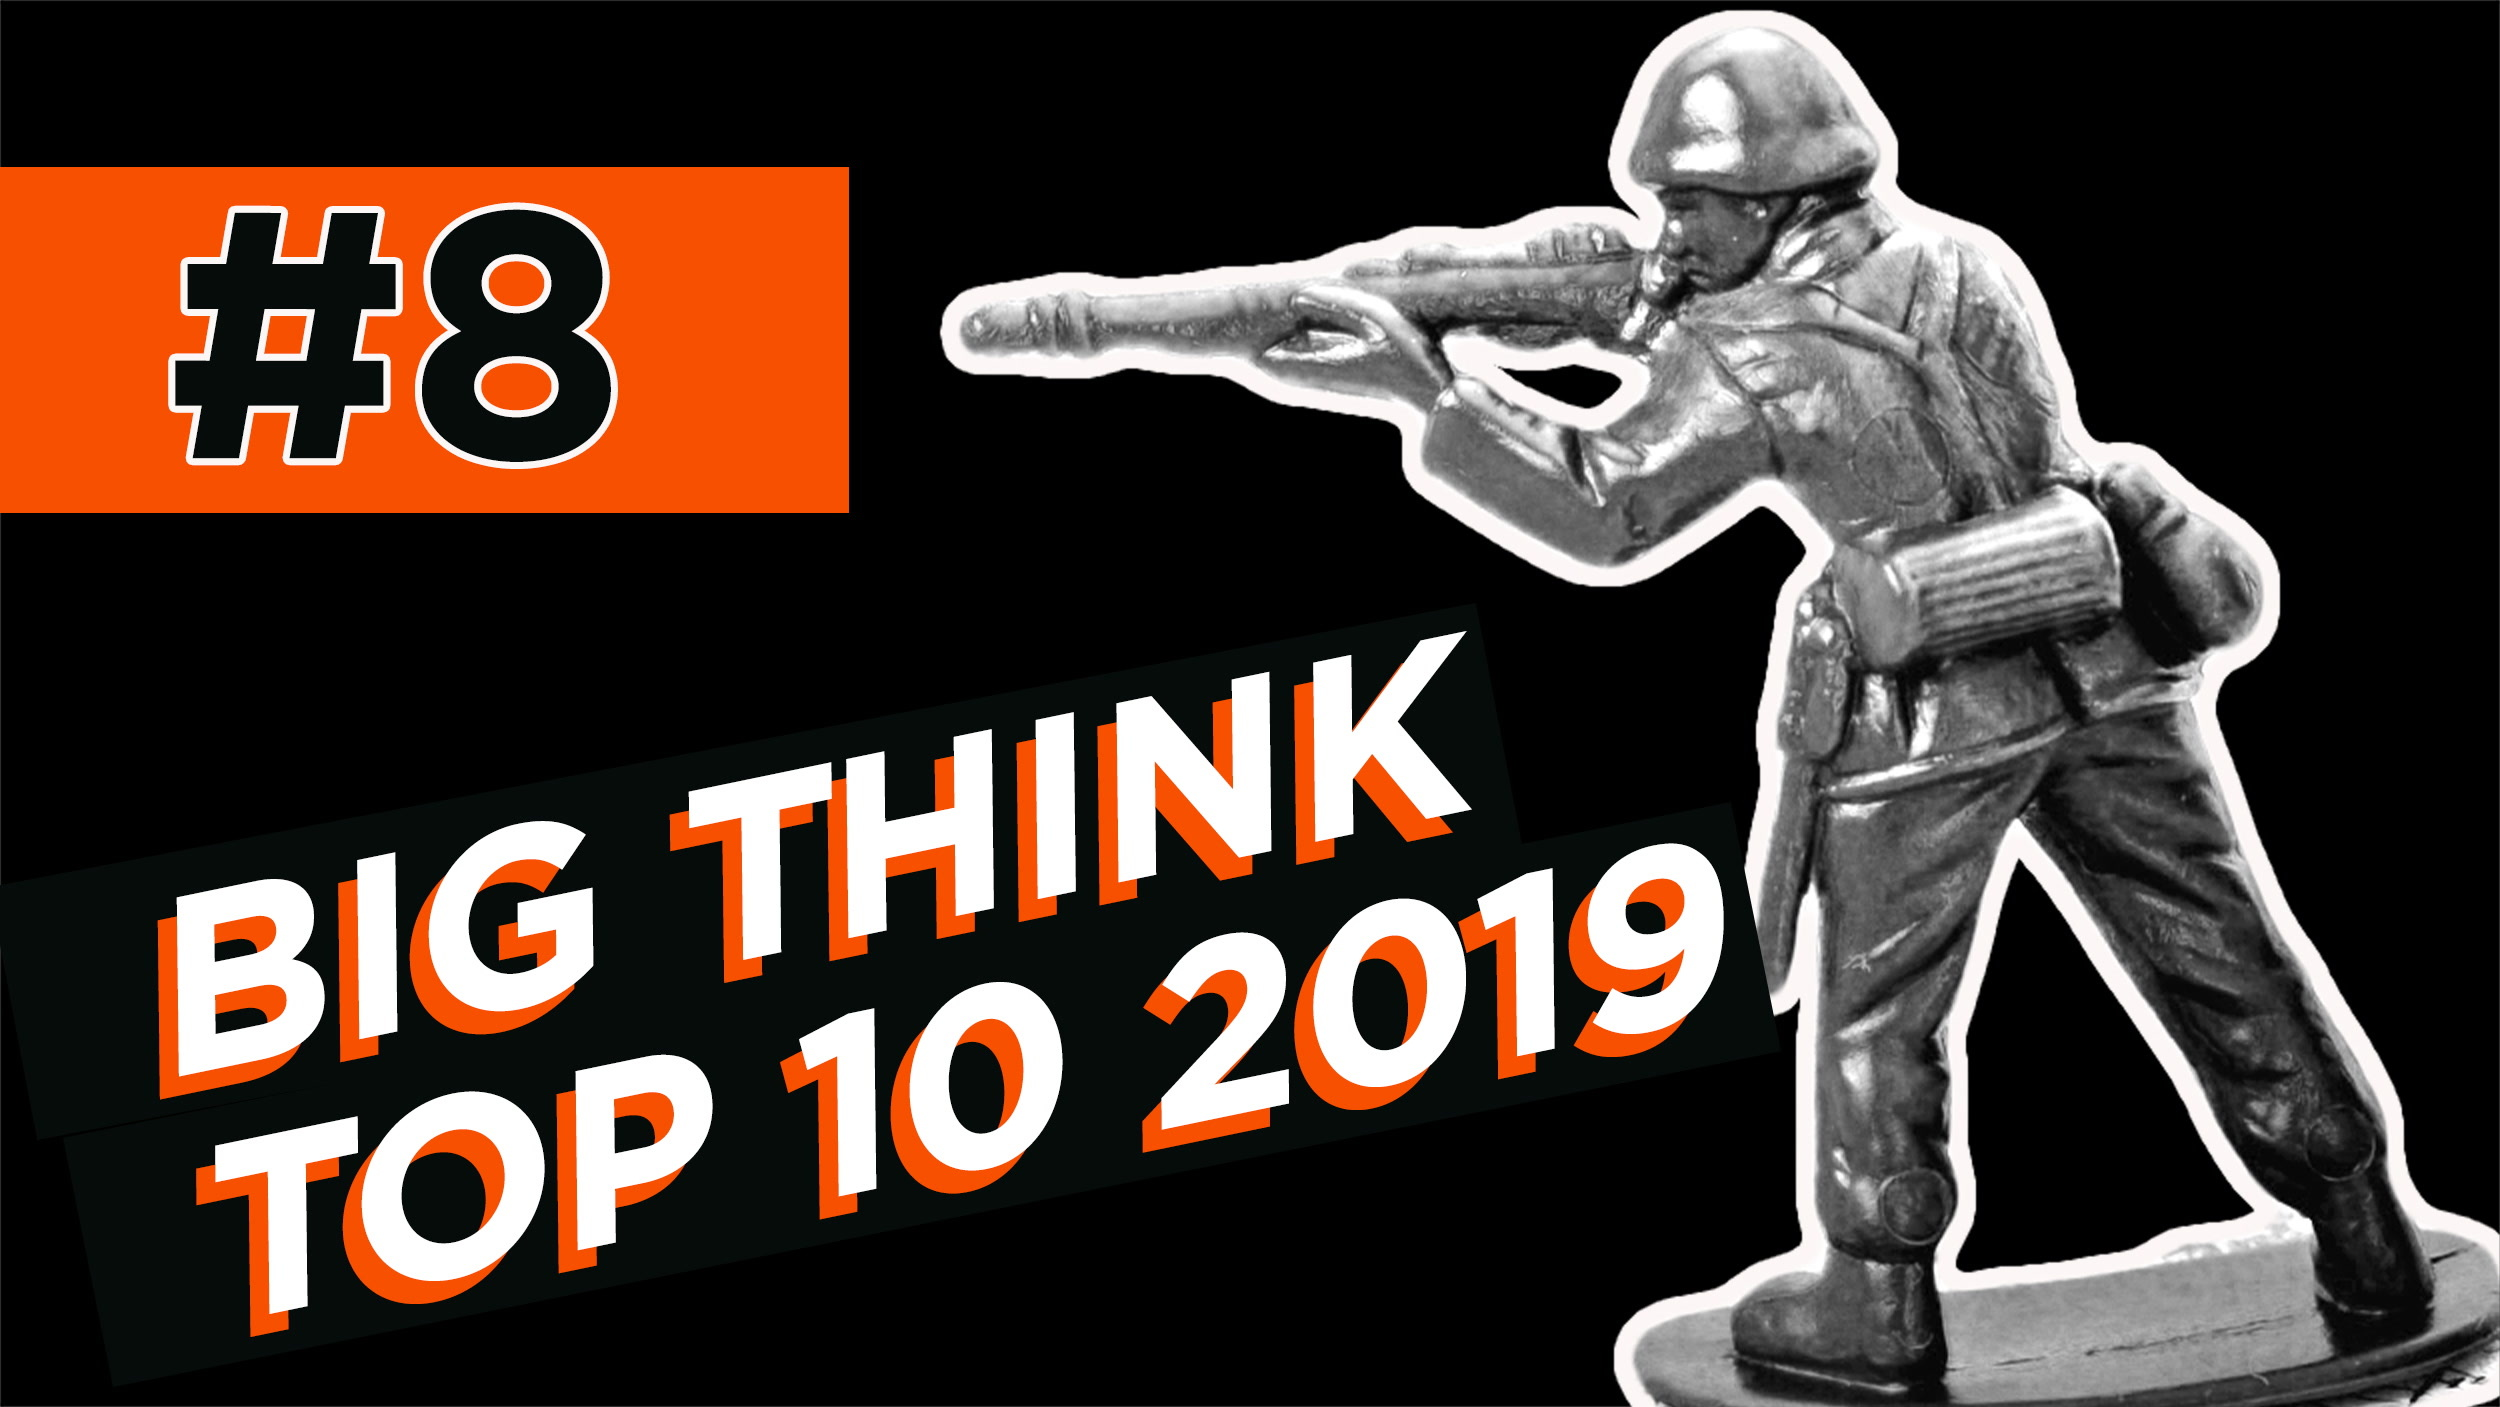 #8: Technology doesn t win wars. Why the US pretends it does. | Top 10 2019